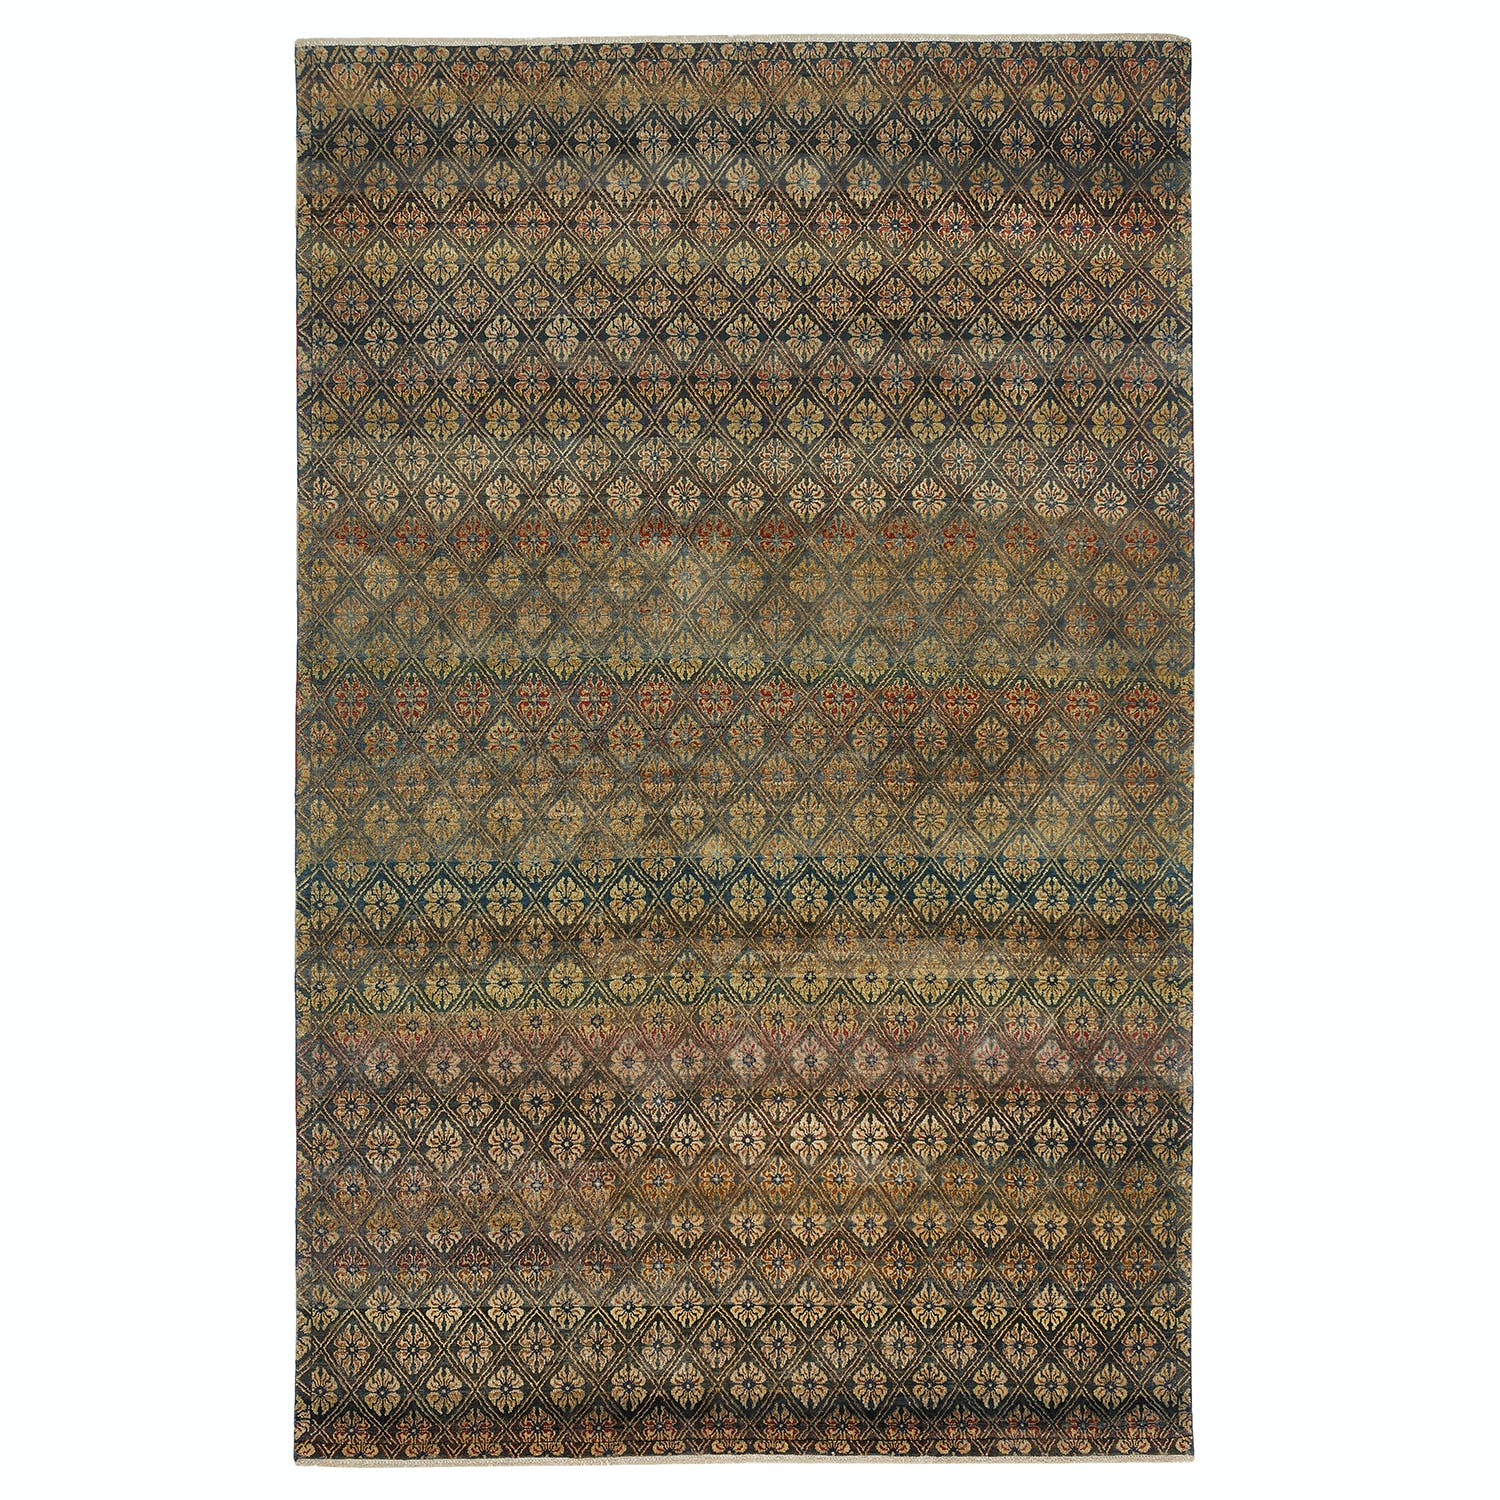 Product Image - Alchemy Rug - 6' x 9'6""